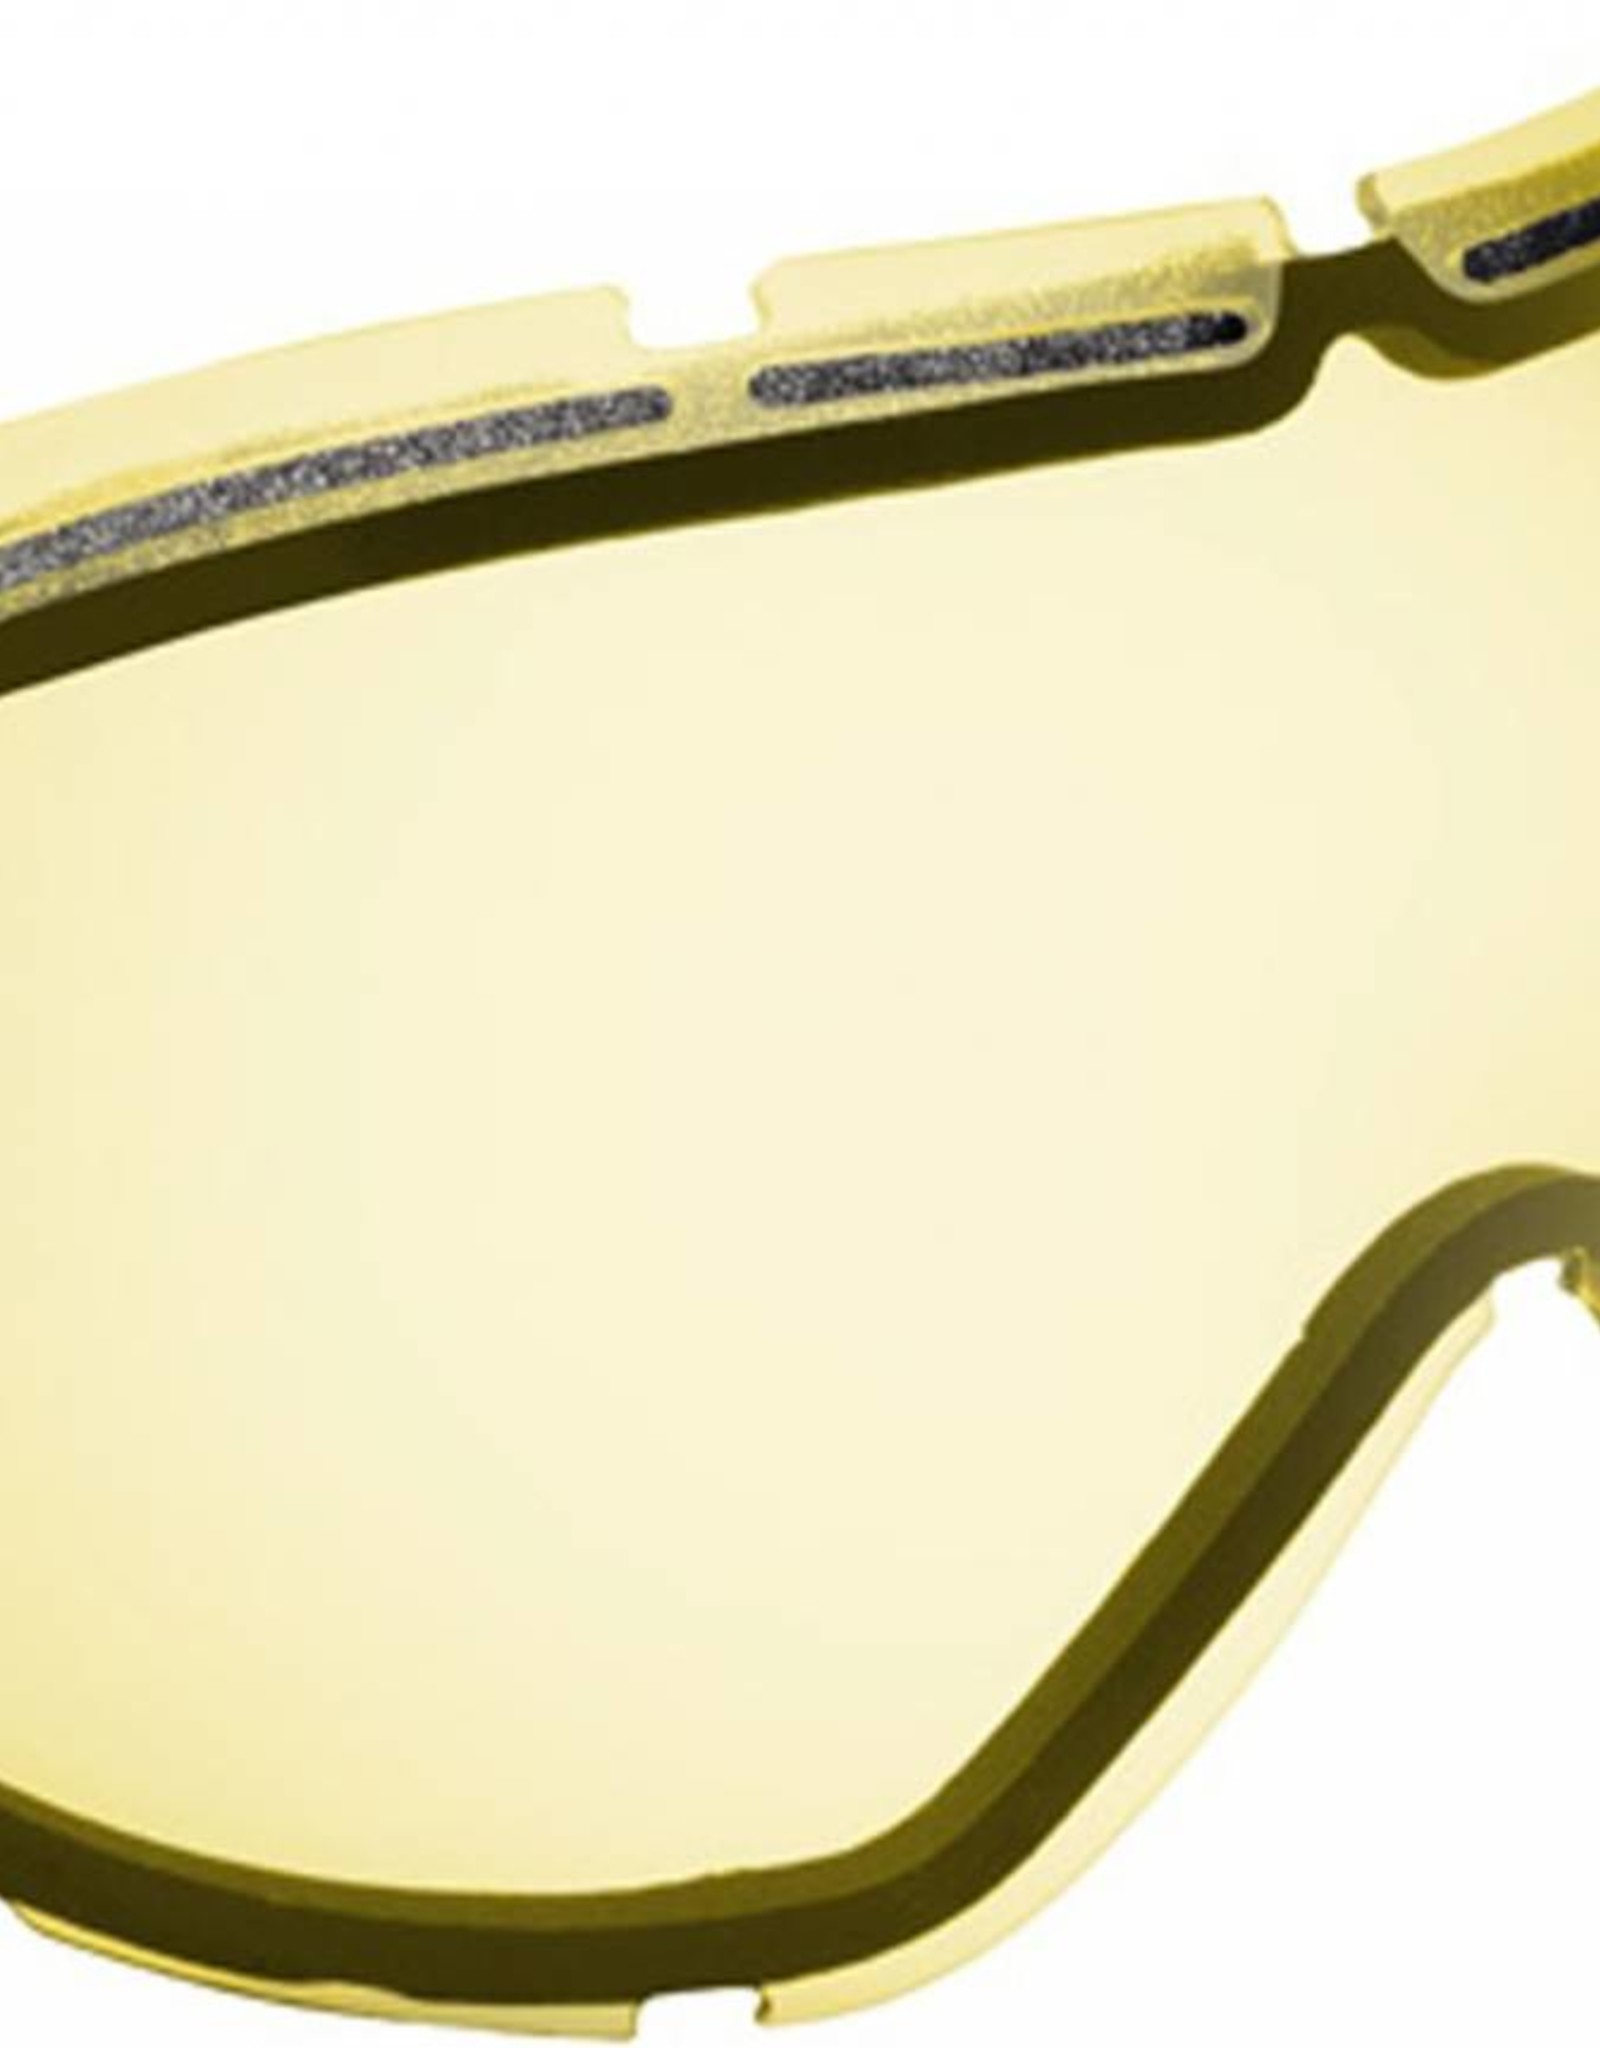 Von Zipper VZ - Fishbowl Lens - Yellow